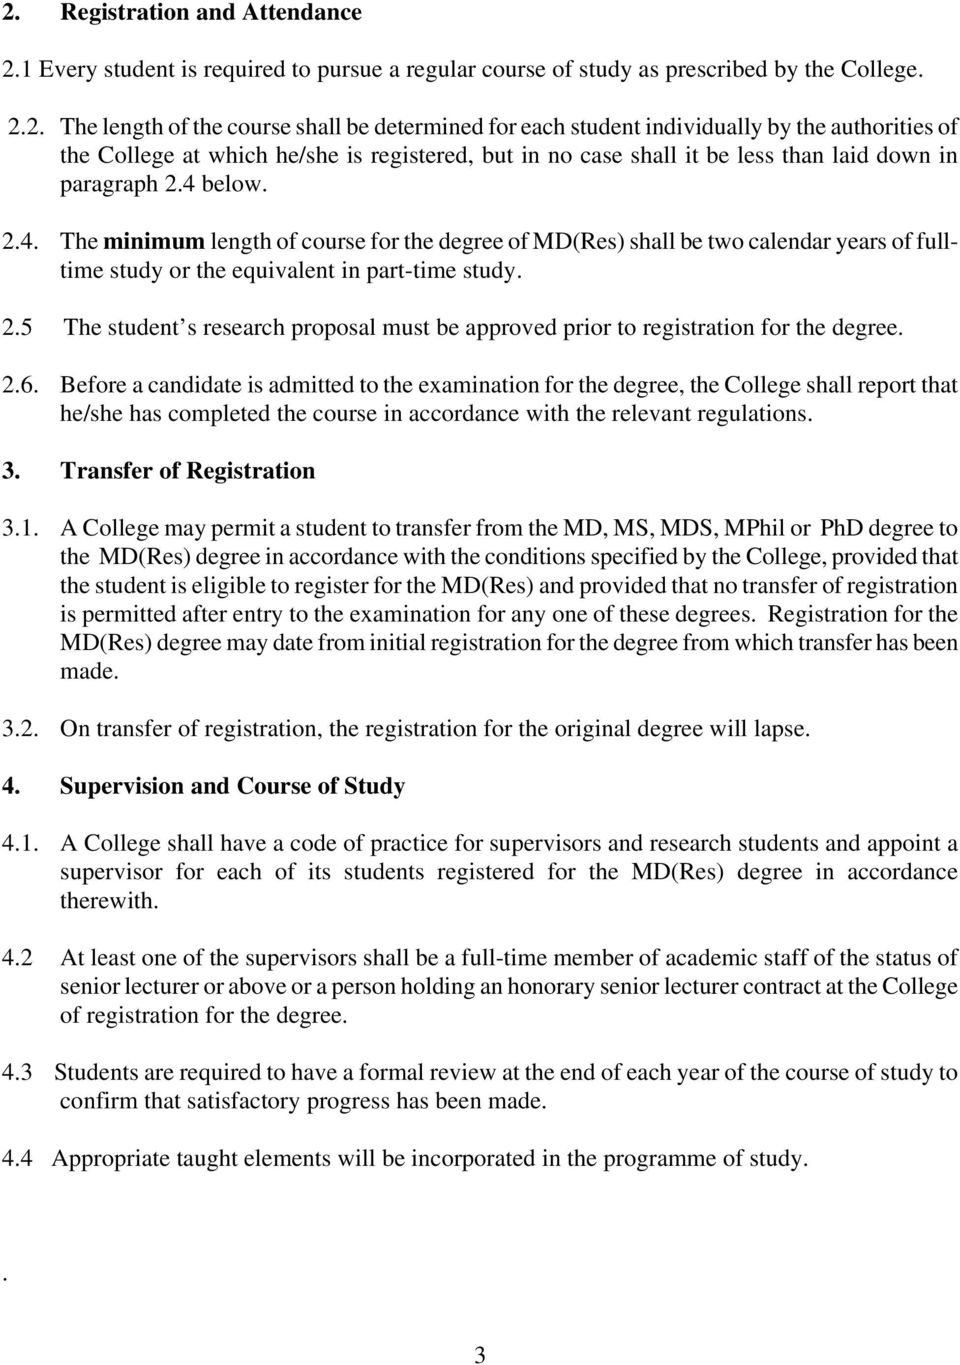 below. 2.4. The minimum length of course for the degree of MD(Res) shall be two calendar years of fulltime study or the equivalent in part-time study. 2.5 The student s research proposal must be approved prior to registration for the degree.